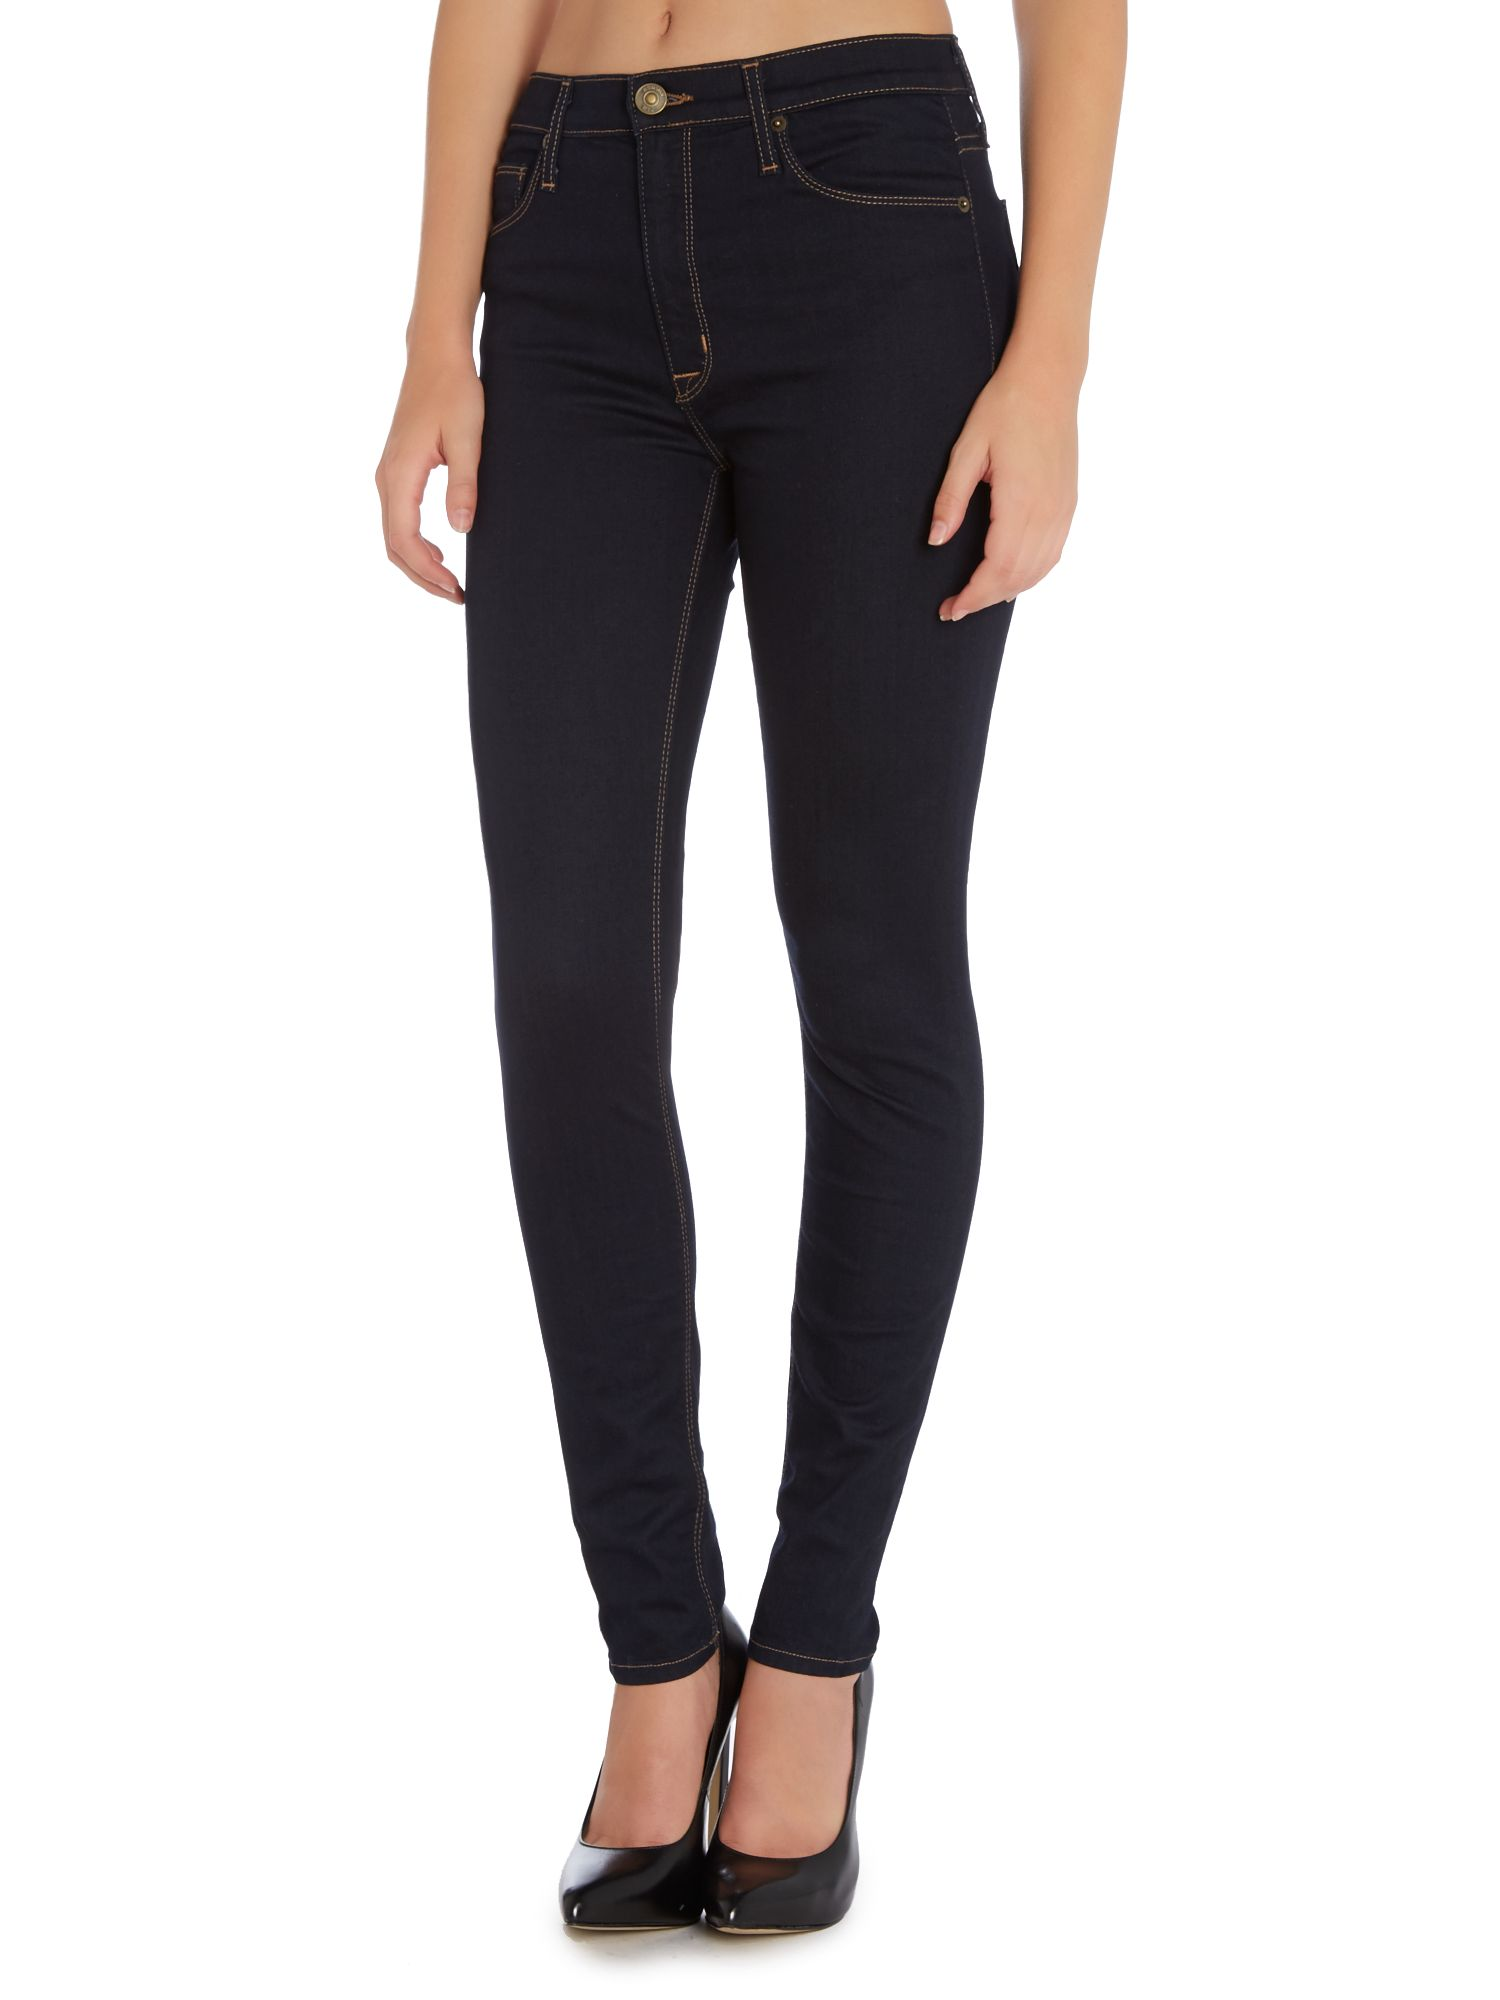 Barbara high rise jeans in storm